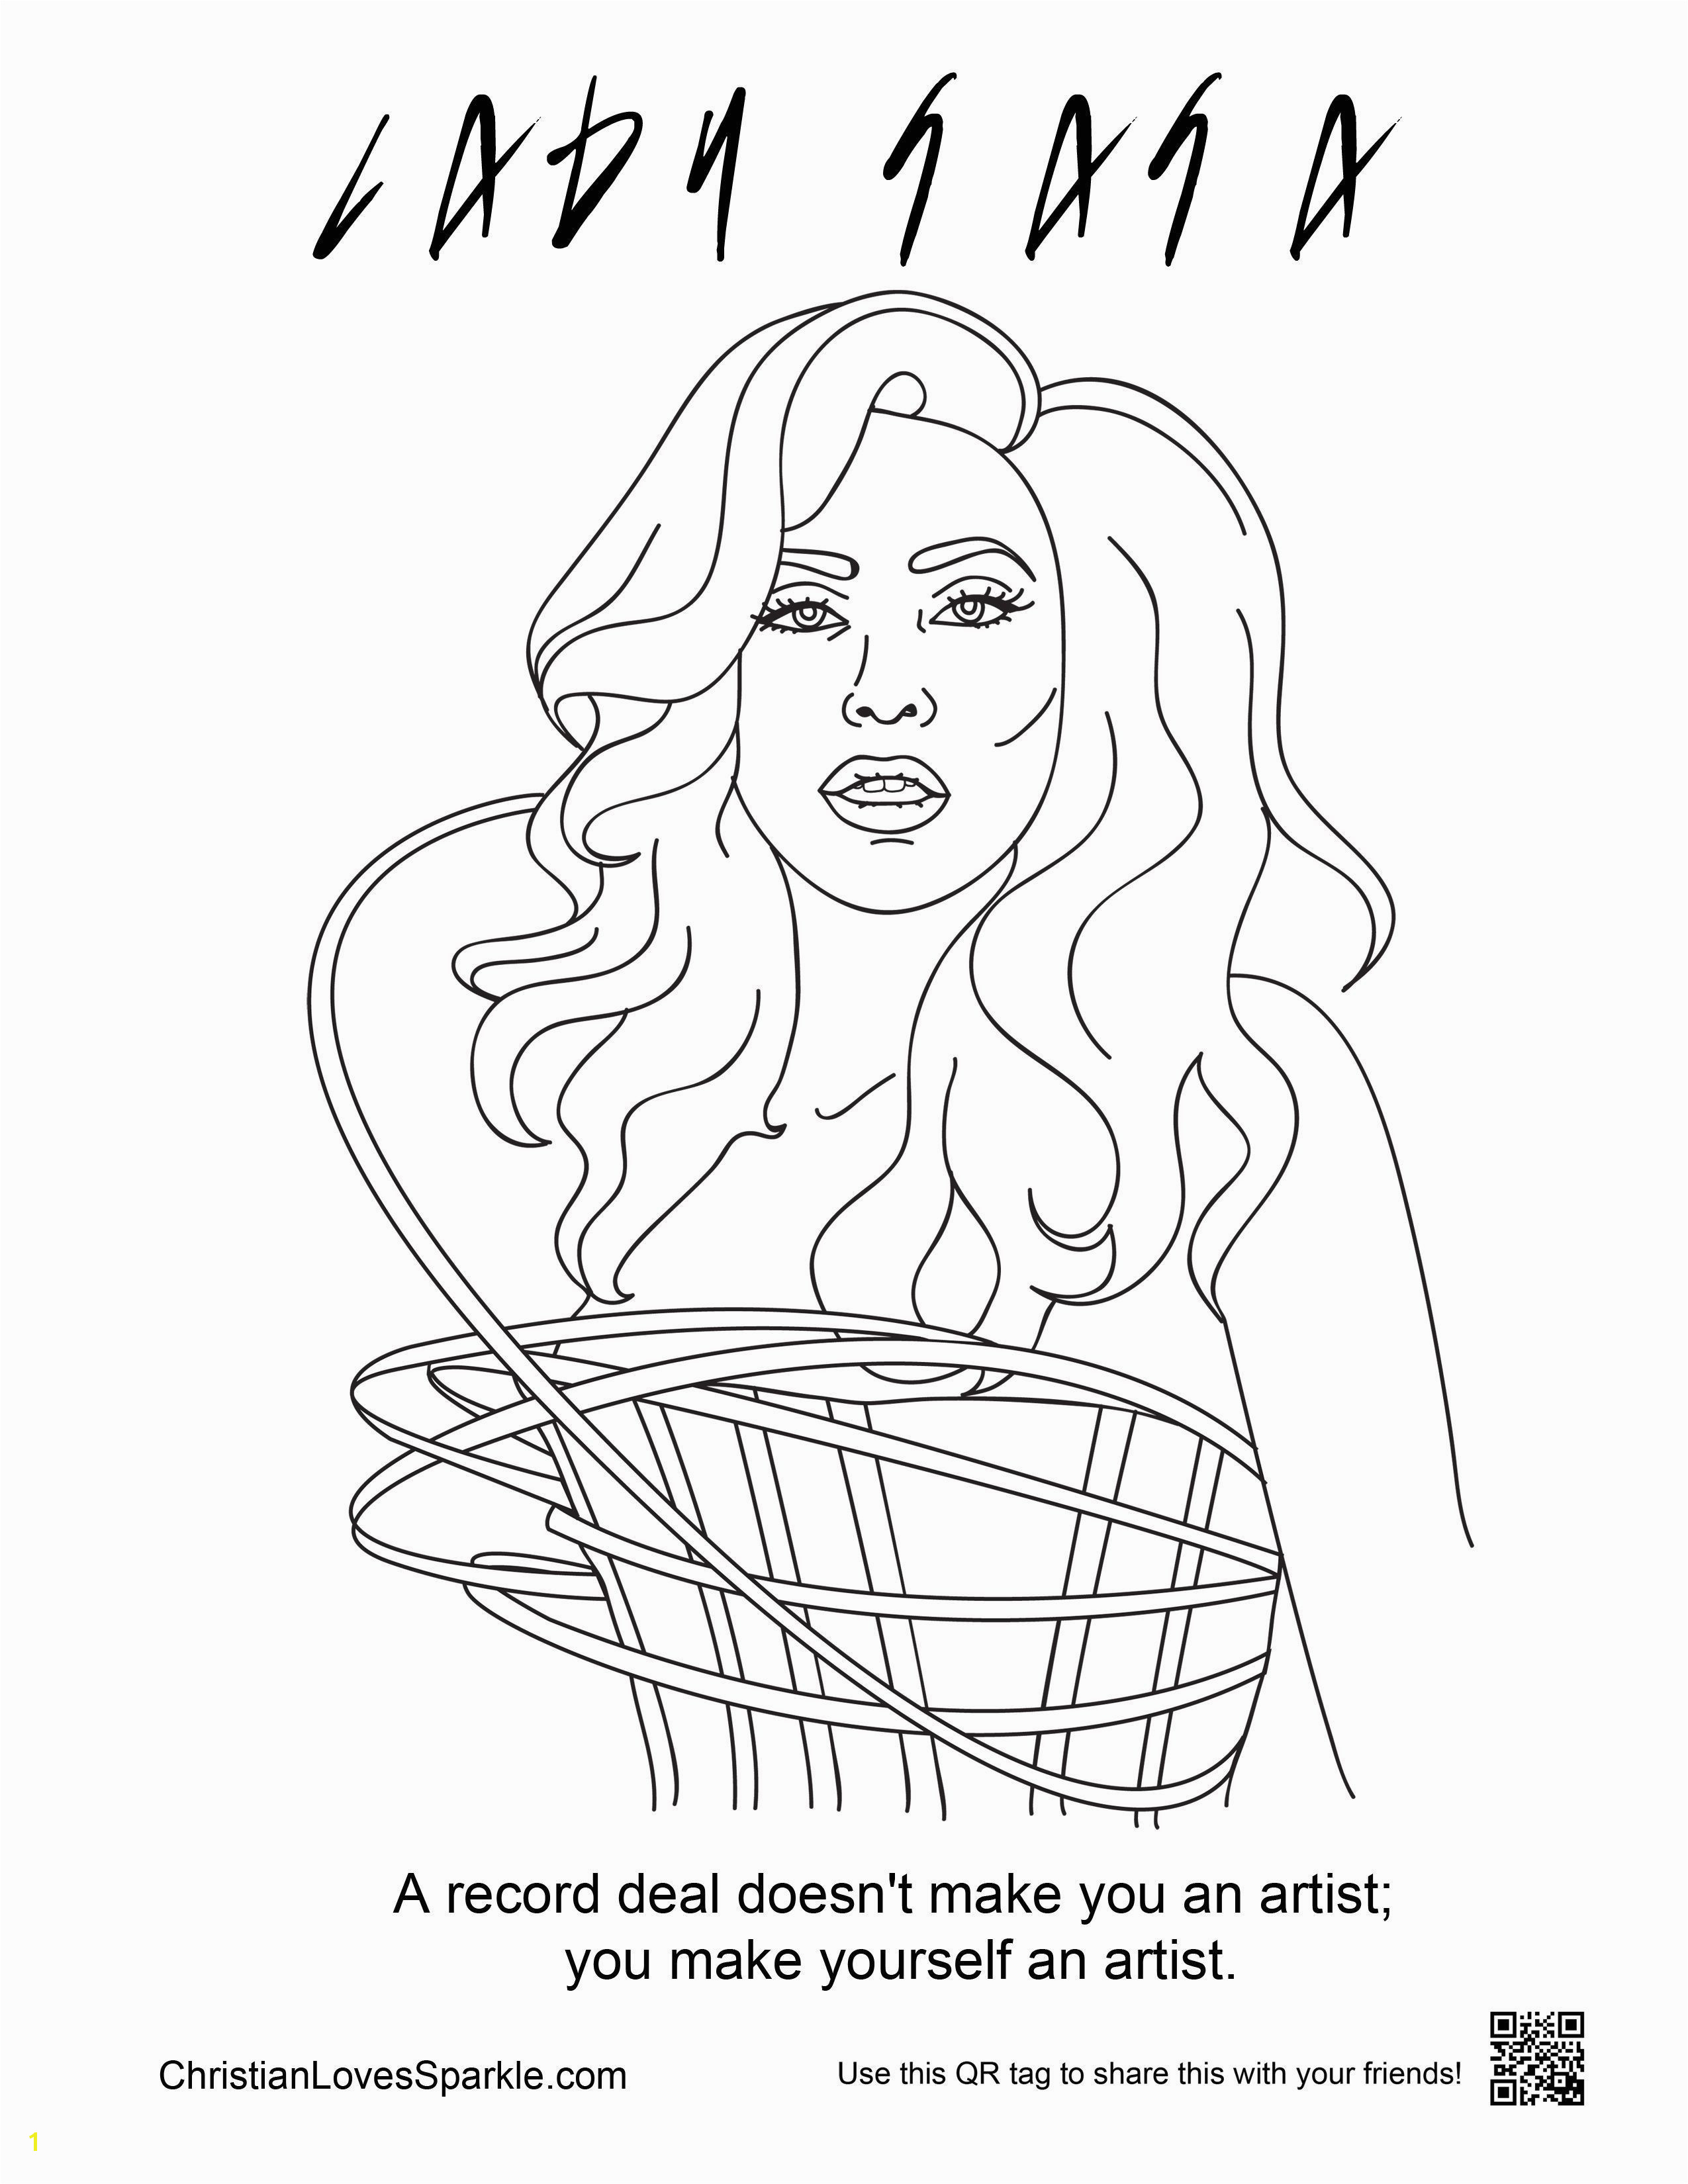 Record Coloring Page Elegant Sscevmt 2550—3300 Art therapy Coloring Pages Record Coloring Page